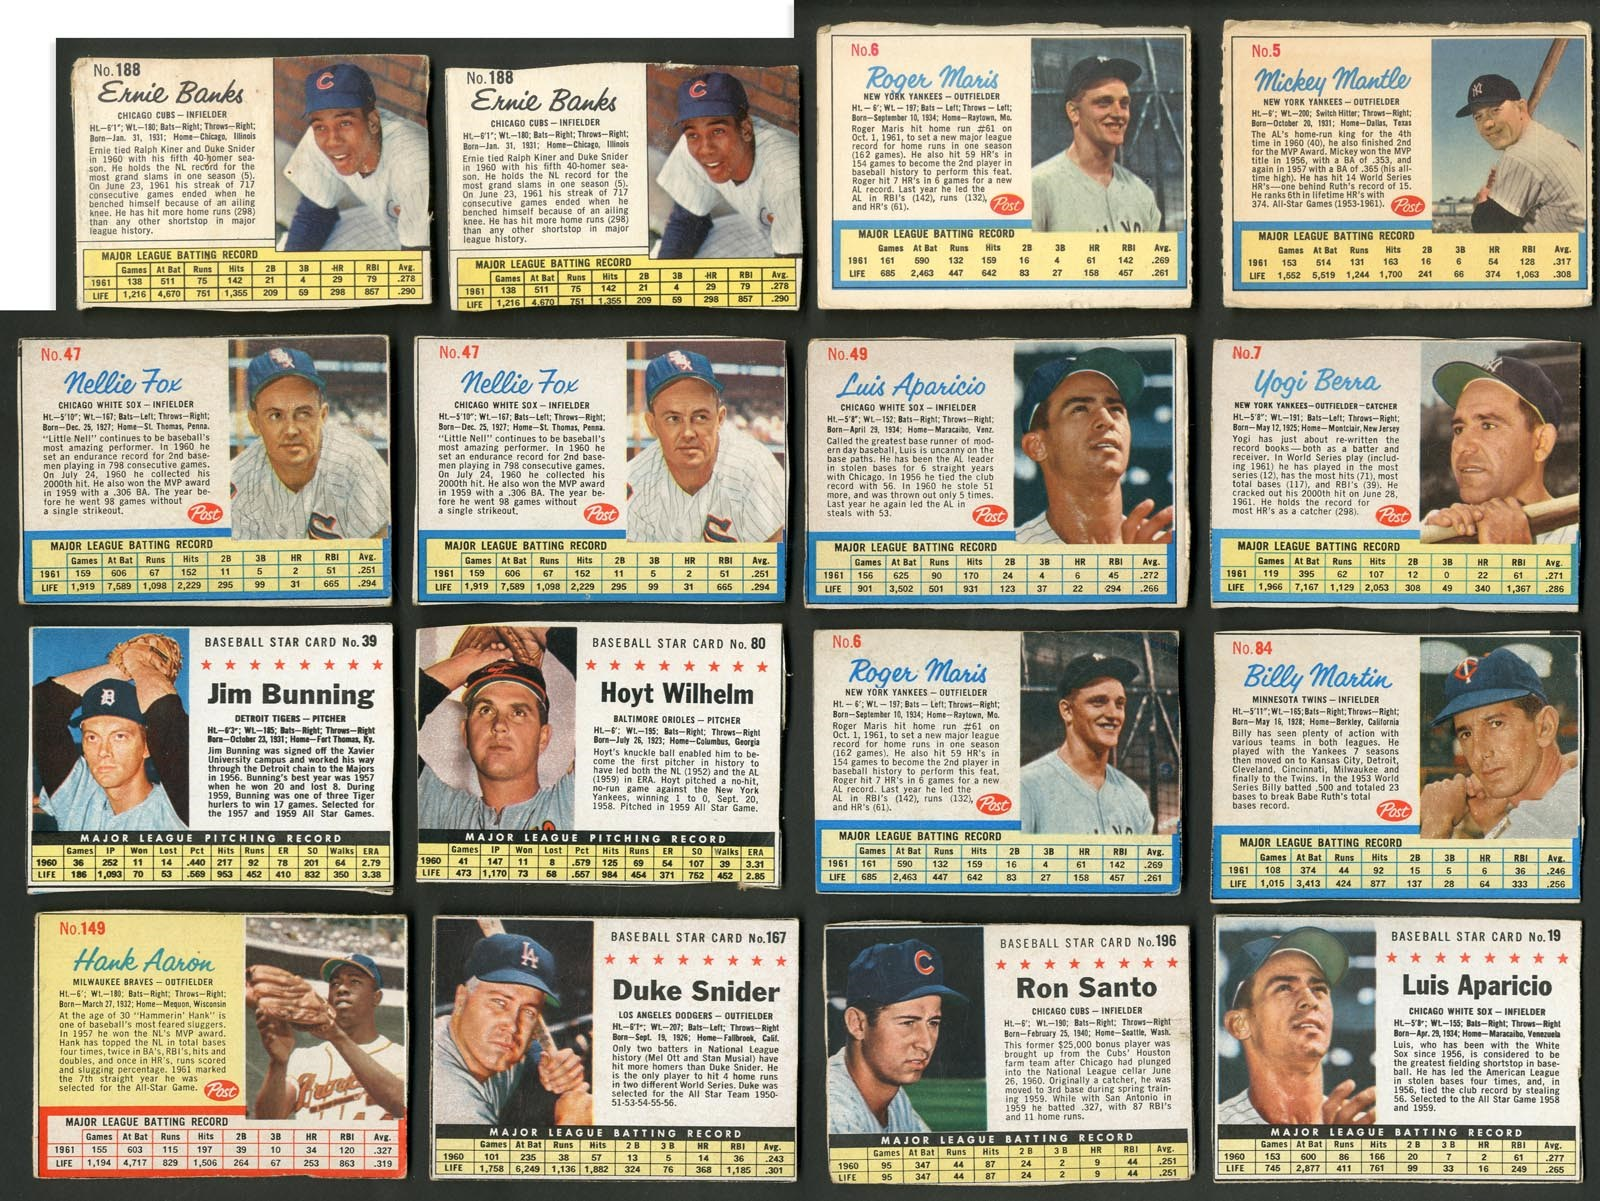 1961-63 Post Cereal Collection - Mantle (Ad Back), Clemente, Aaron, Maris (190+)